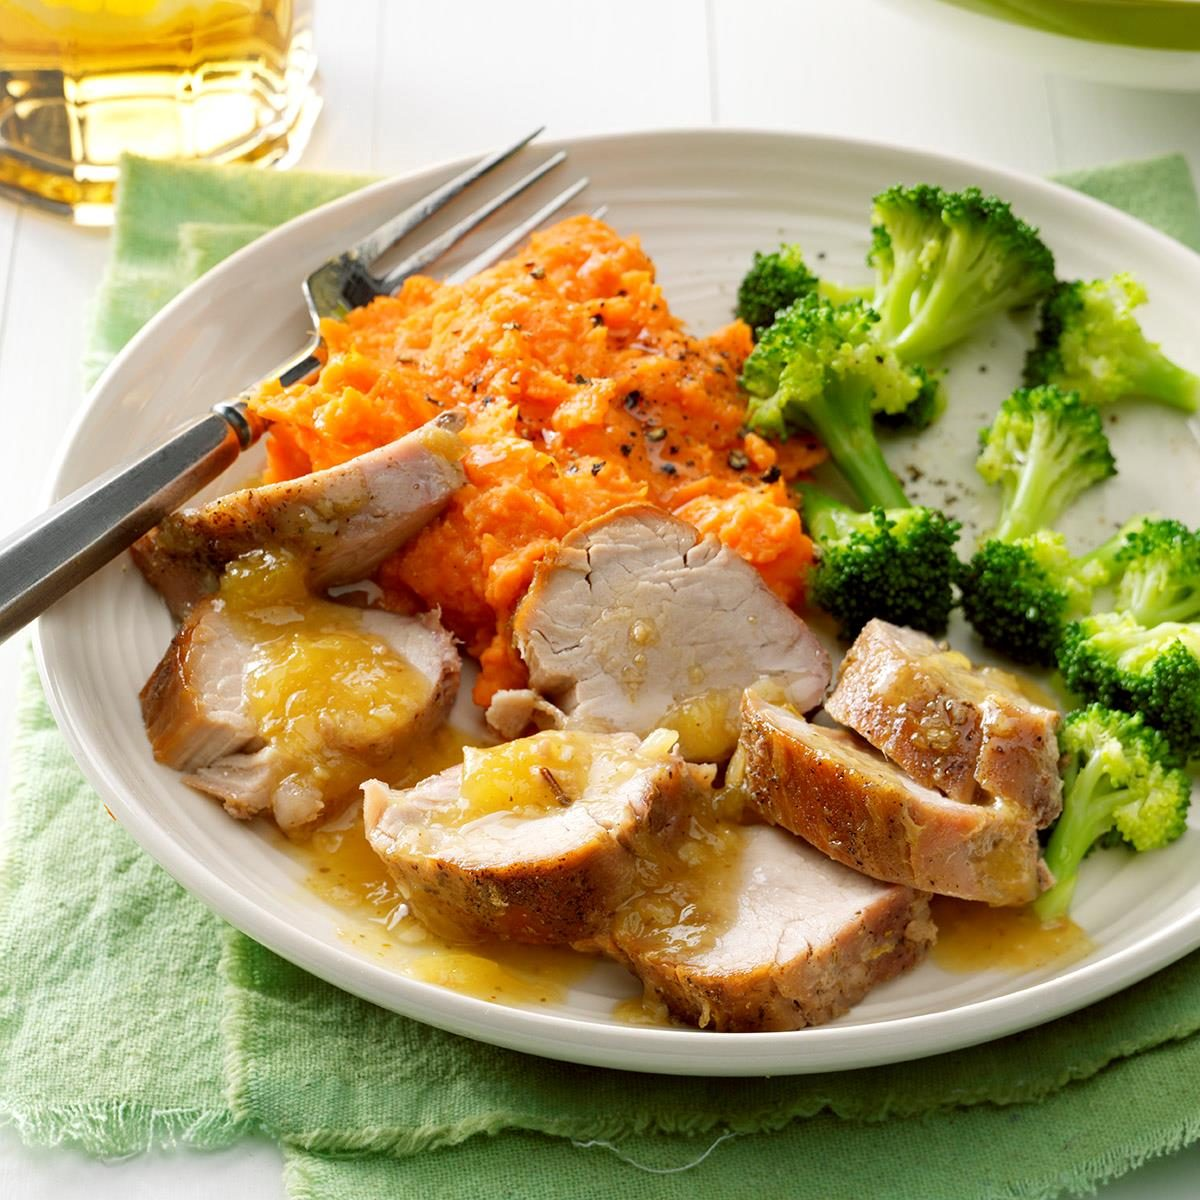 Pork Tenderloin Recipes: Pineapple-Glazed Pork Tenderloin Recipe